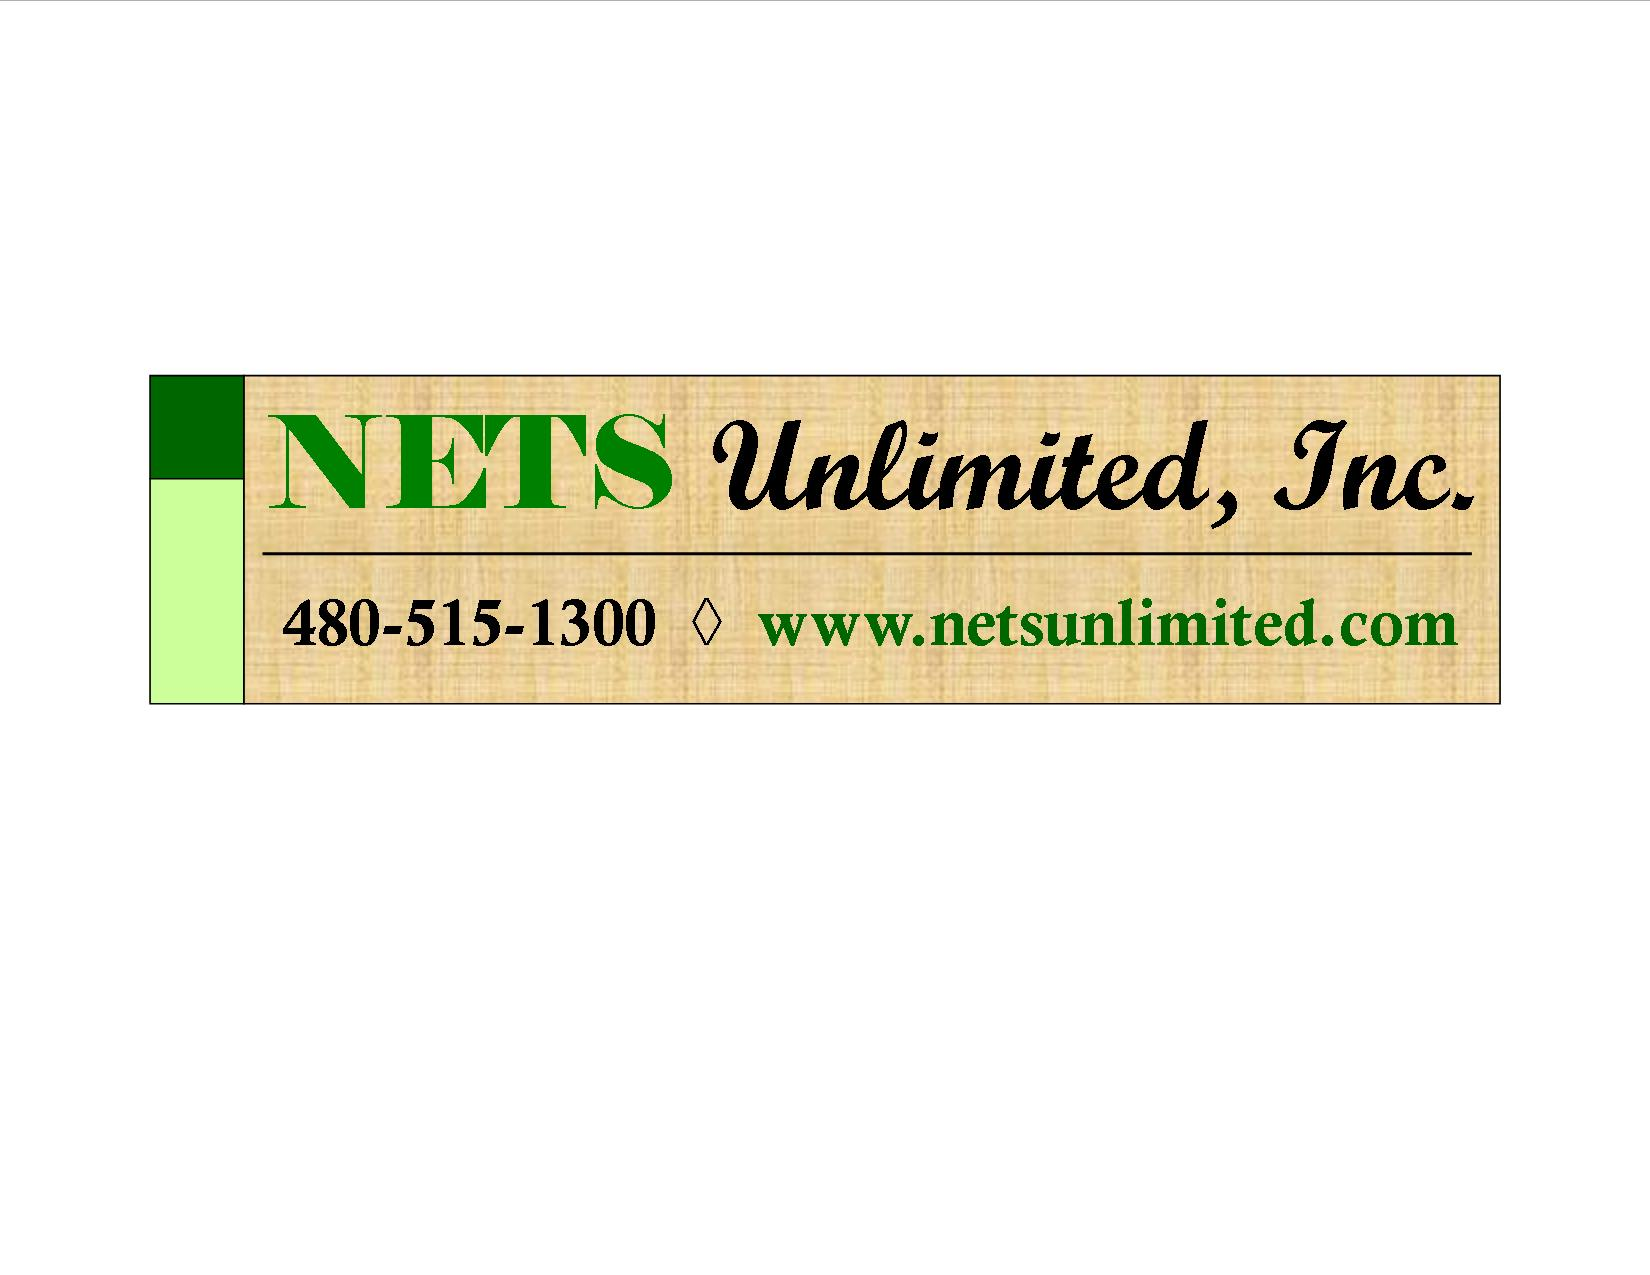 Nets Unlimited Inc.